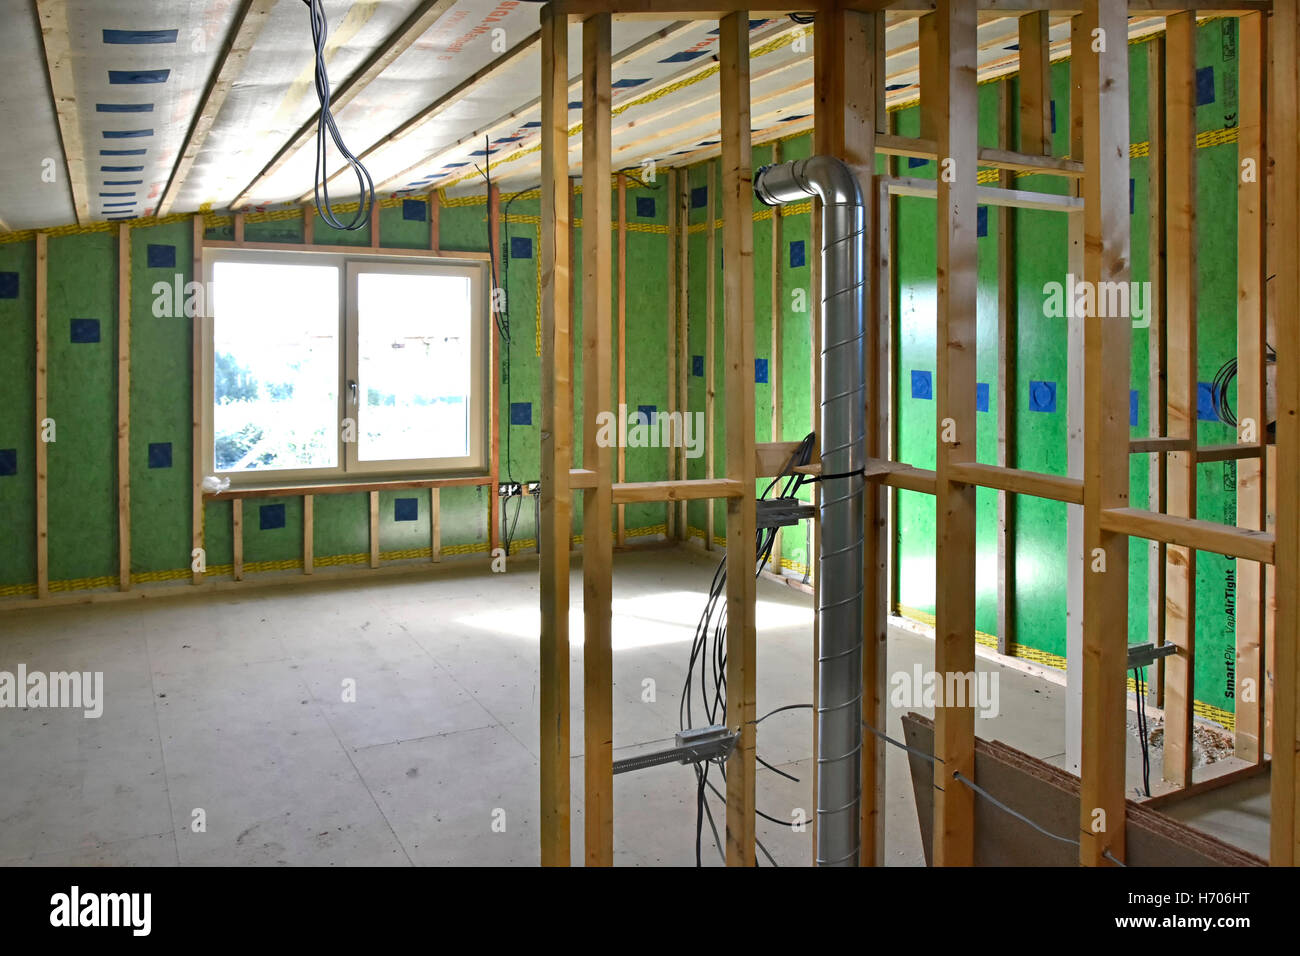 Insulated external walls of timber framed UK Passive House blue patches sealing holes used to pump insulation behind - Stock Image